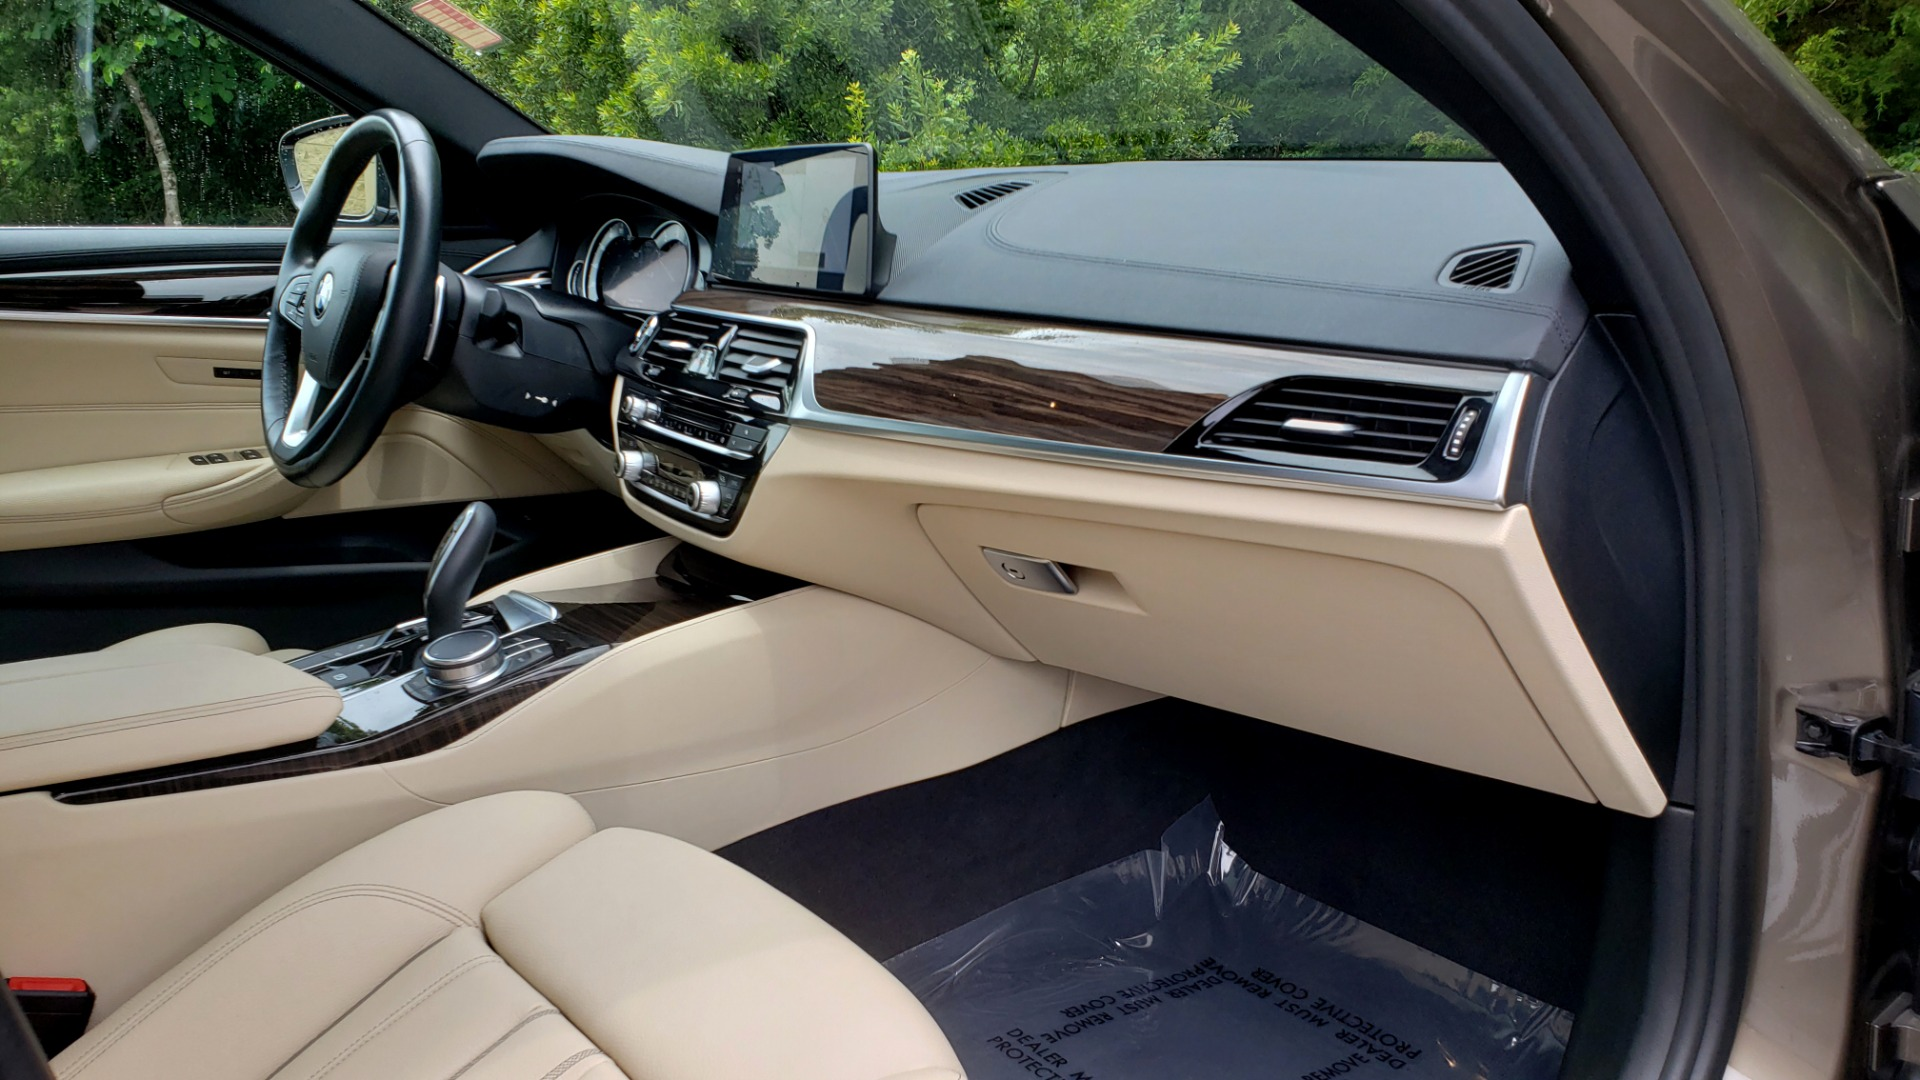 Used 2017 BMW 5 SERIES 530I PREMIUM / NAV / SUNROOF / DRVR ASST PLUS II / LUXURY for sale Sold at Formula Imports in Charlotte NC 28227 62